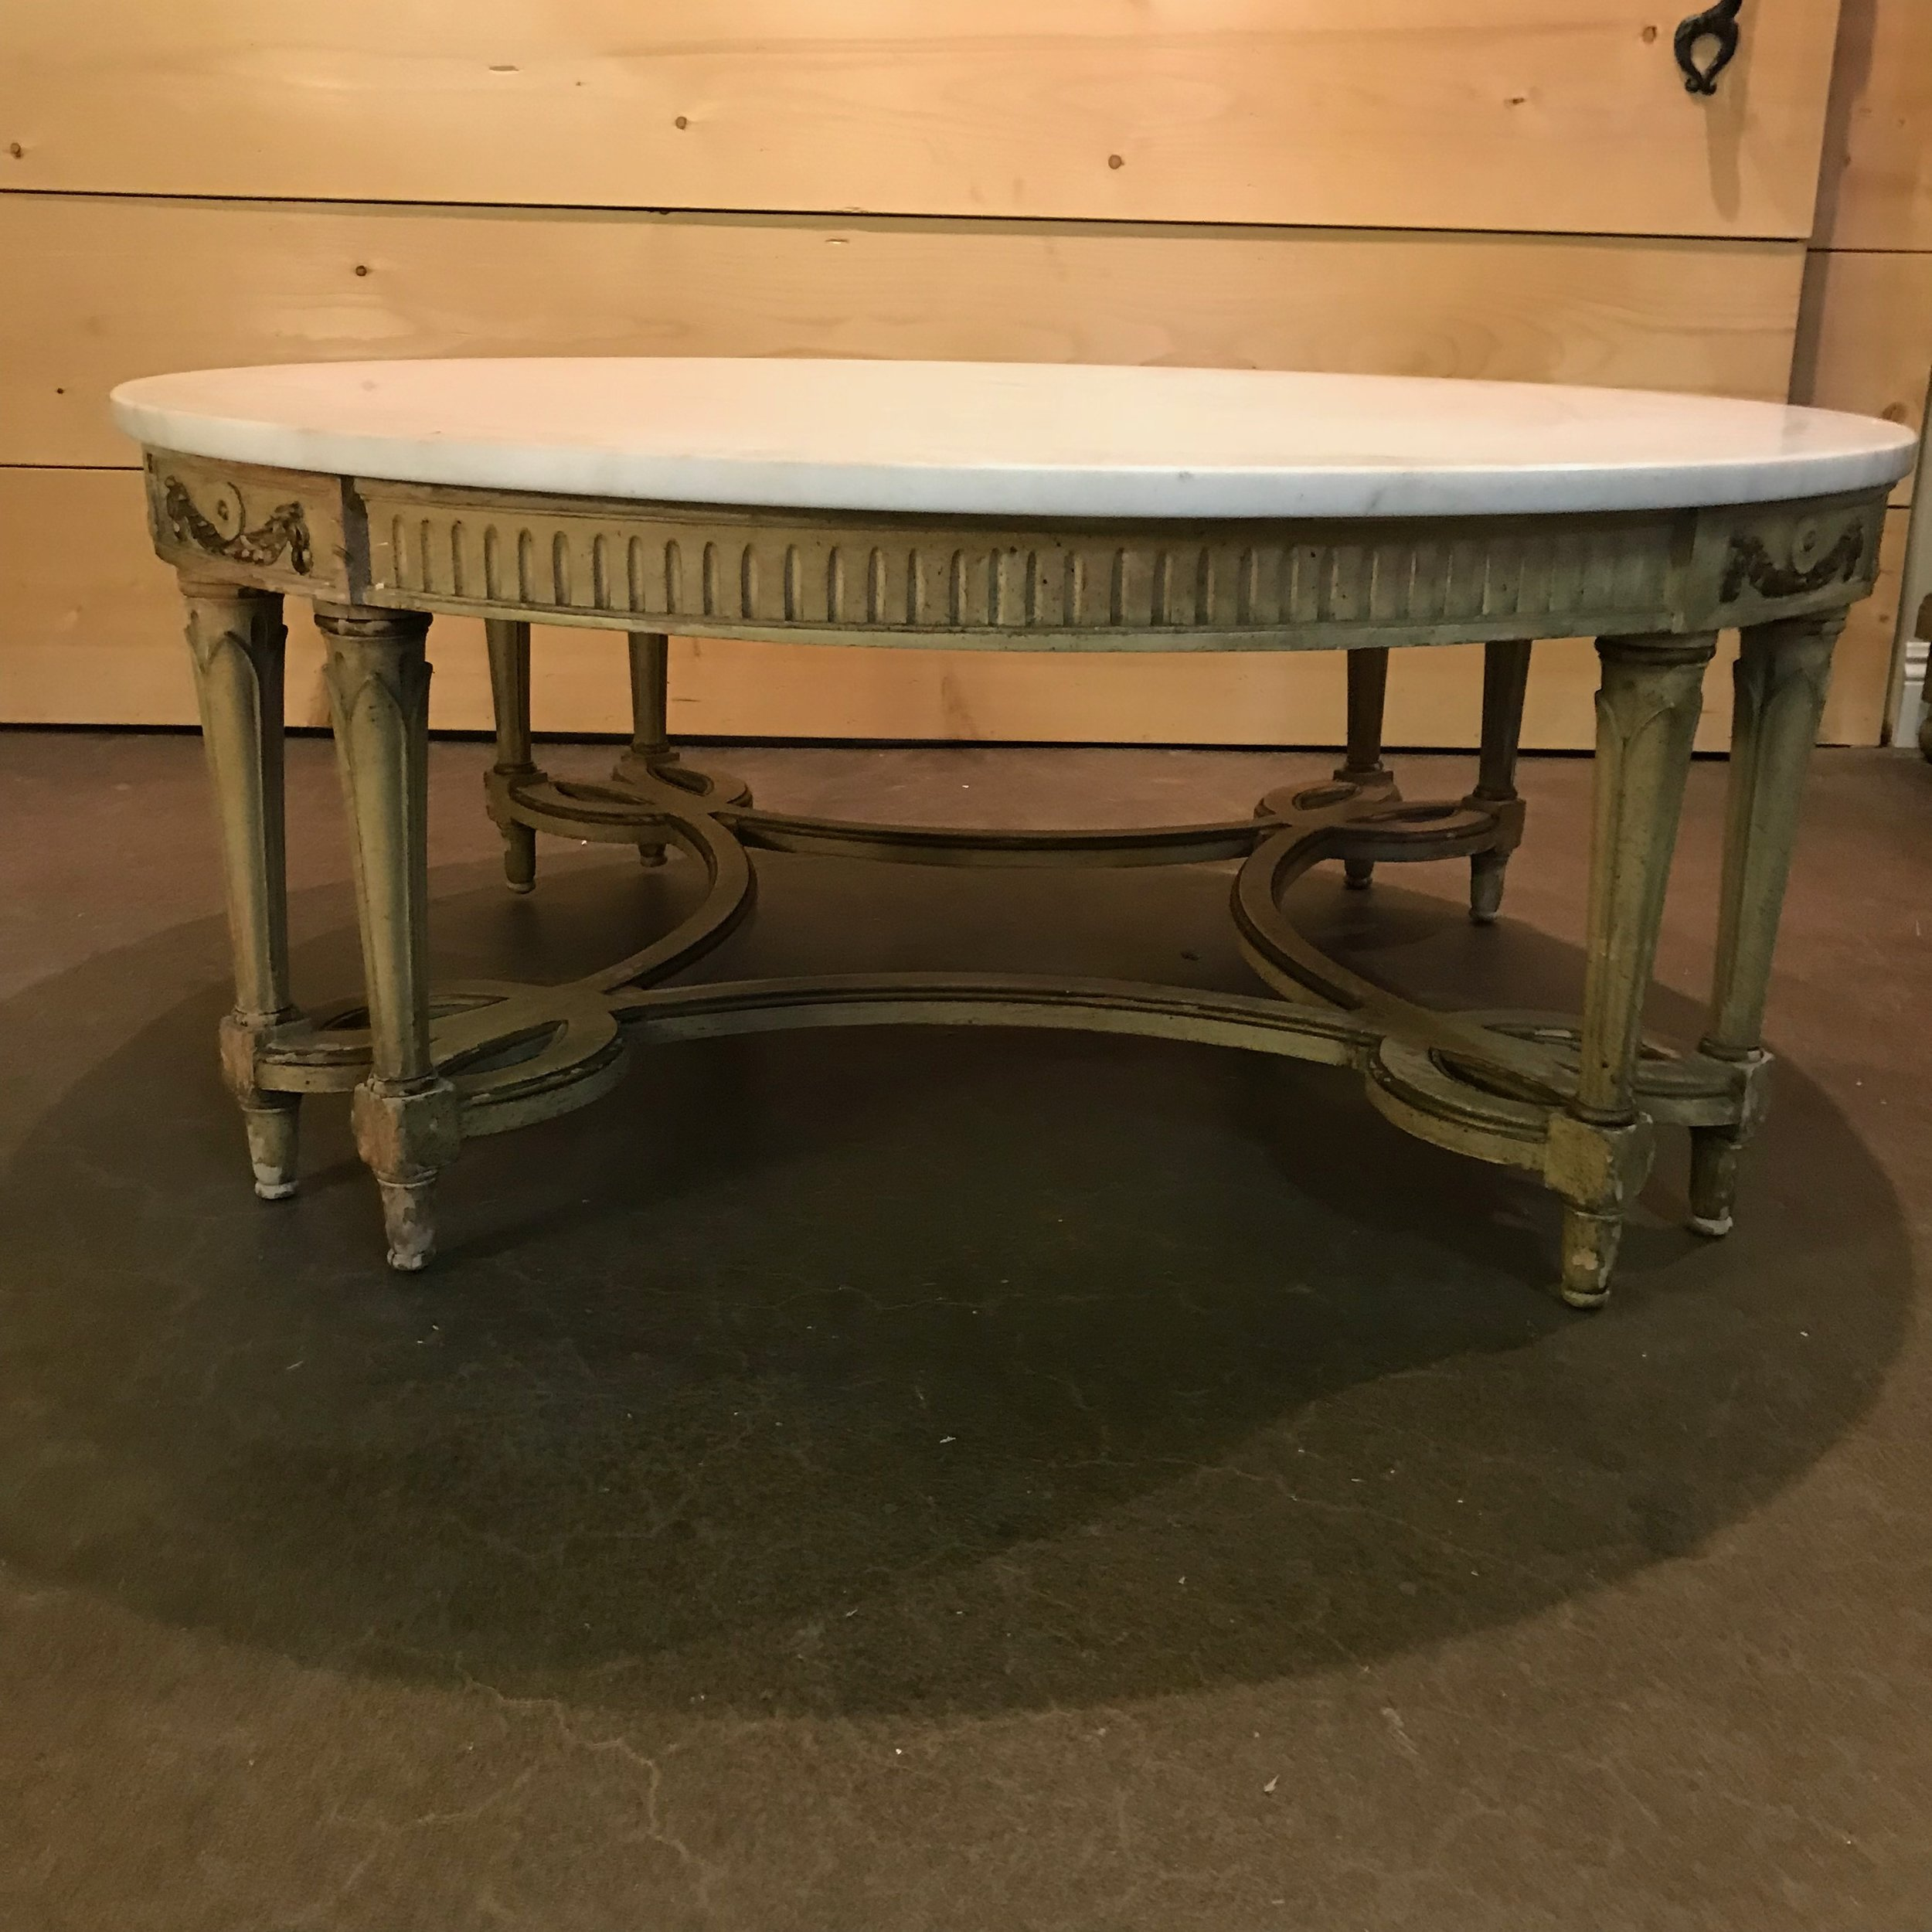 "Greta   Round Hollywood Glam coffee table. Double legged with a marble top and gold accents. 49"" round x 17"" high"